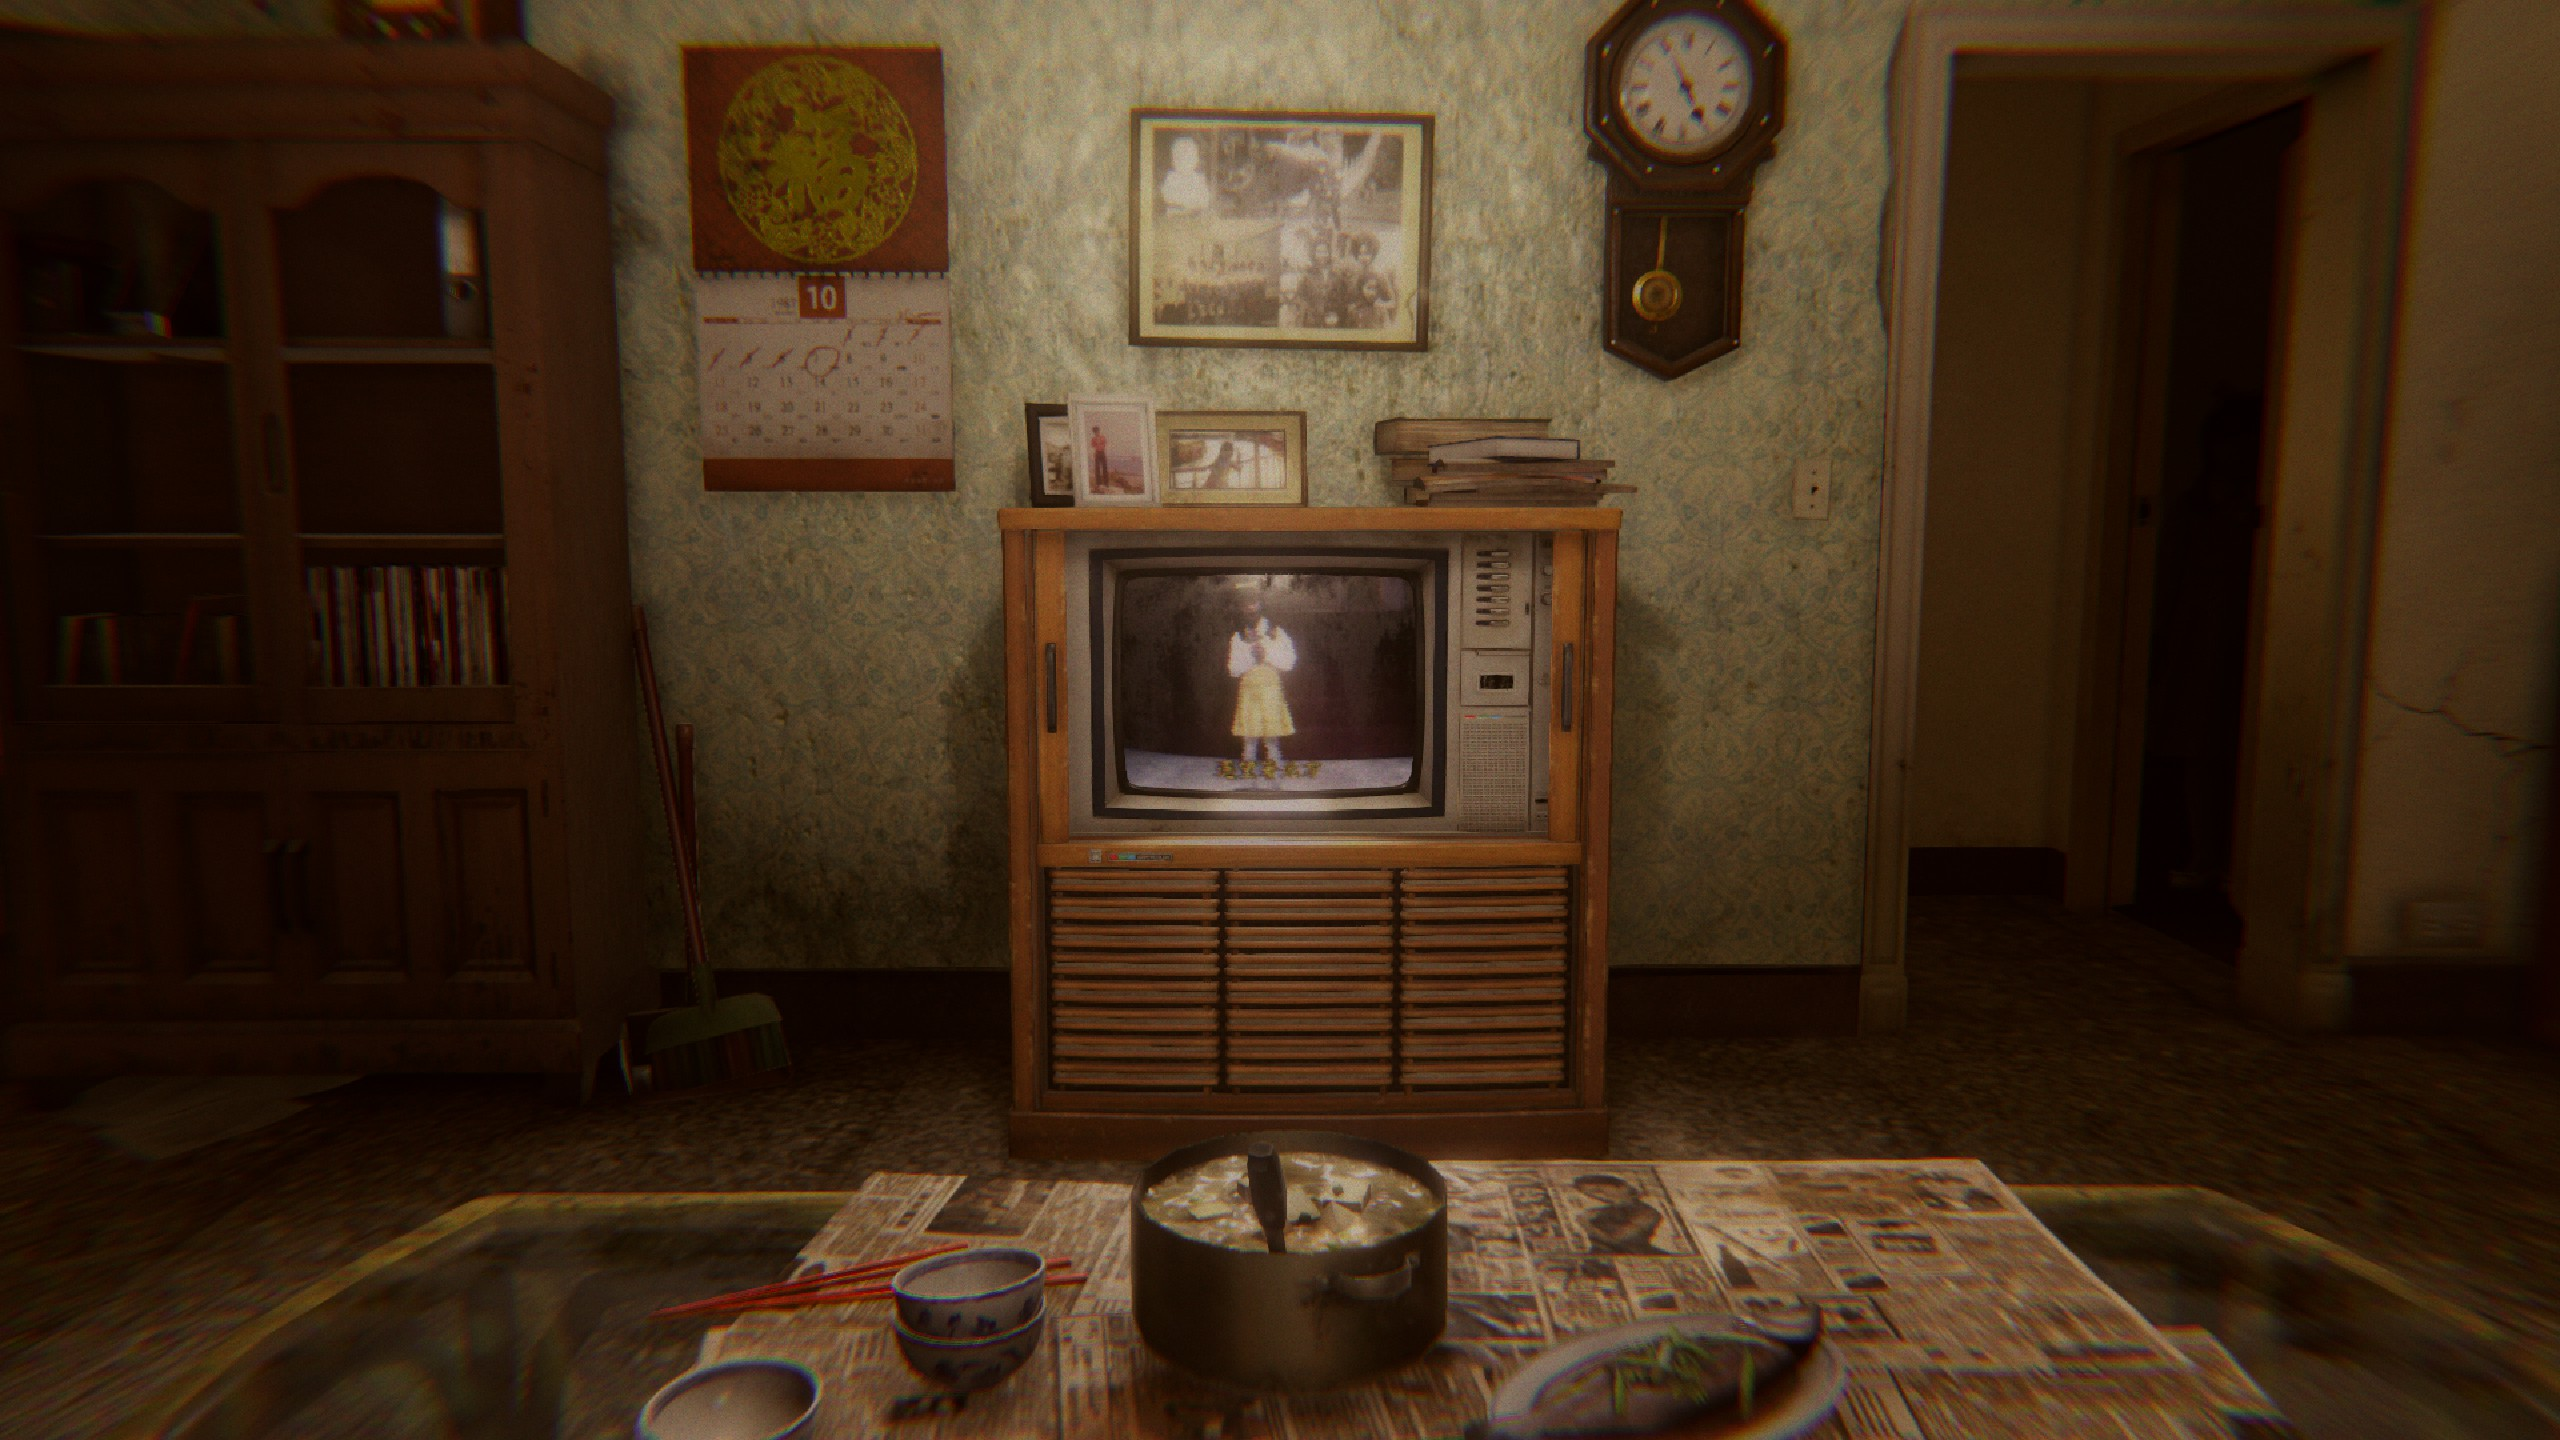 Devotion has ghosts, time travel, and more emotion than most horror games